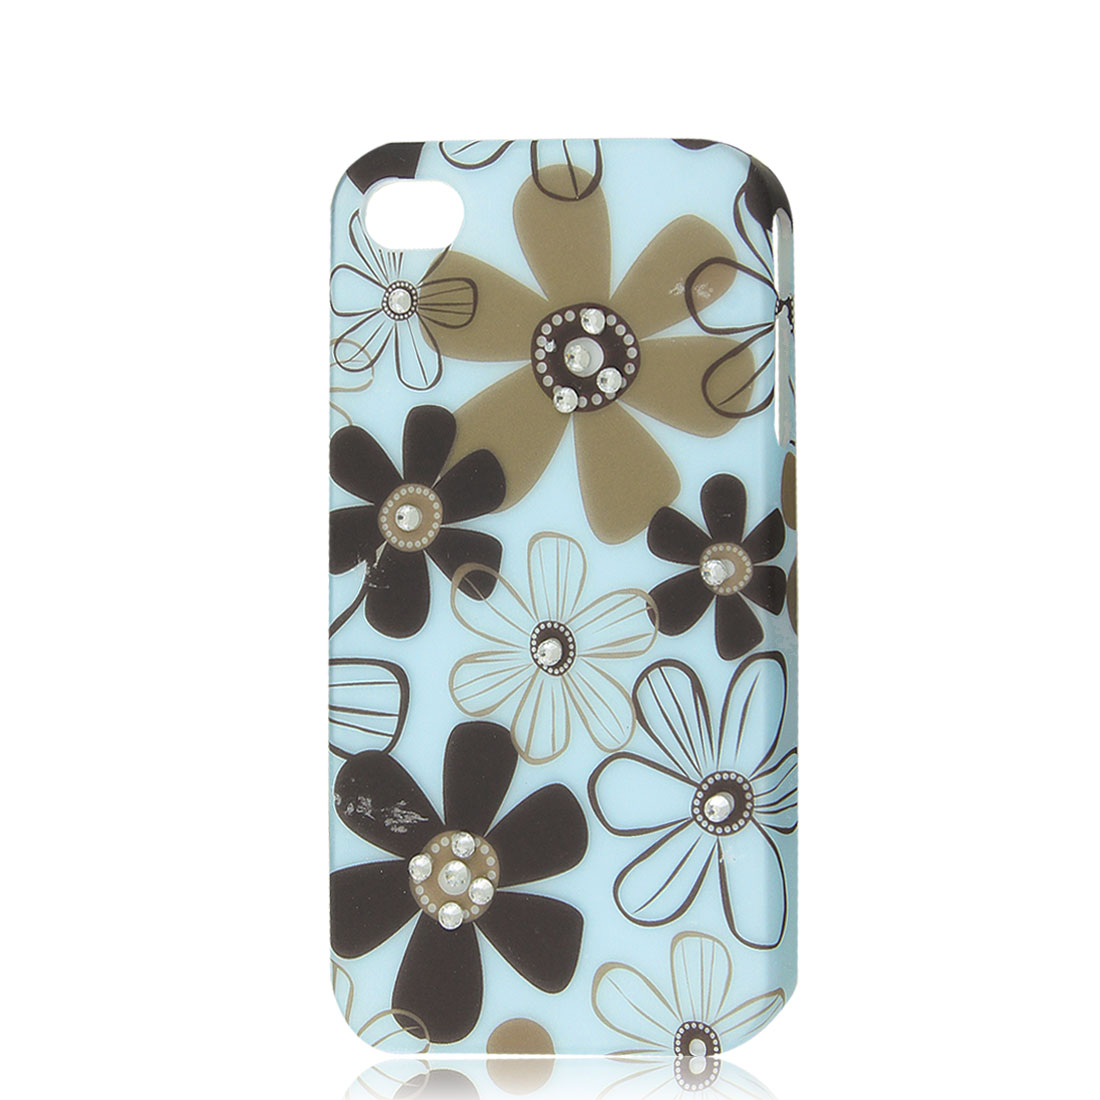 Light Blue Rhinestone Flower Protective Hard Back Case Cover Skin for iPhone 4 4G